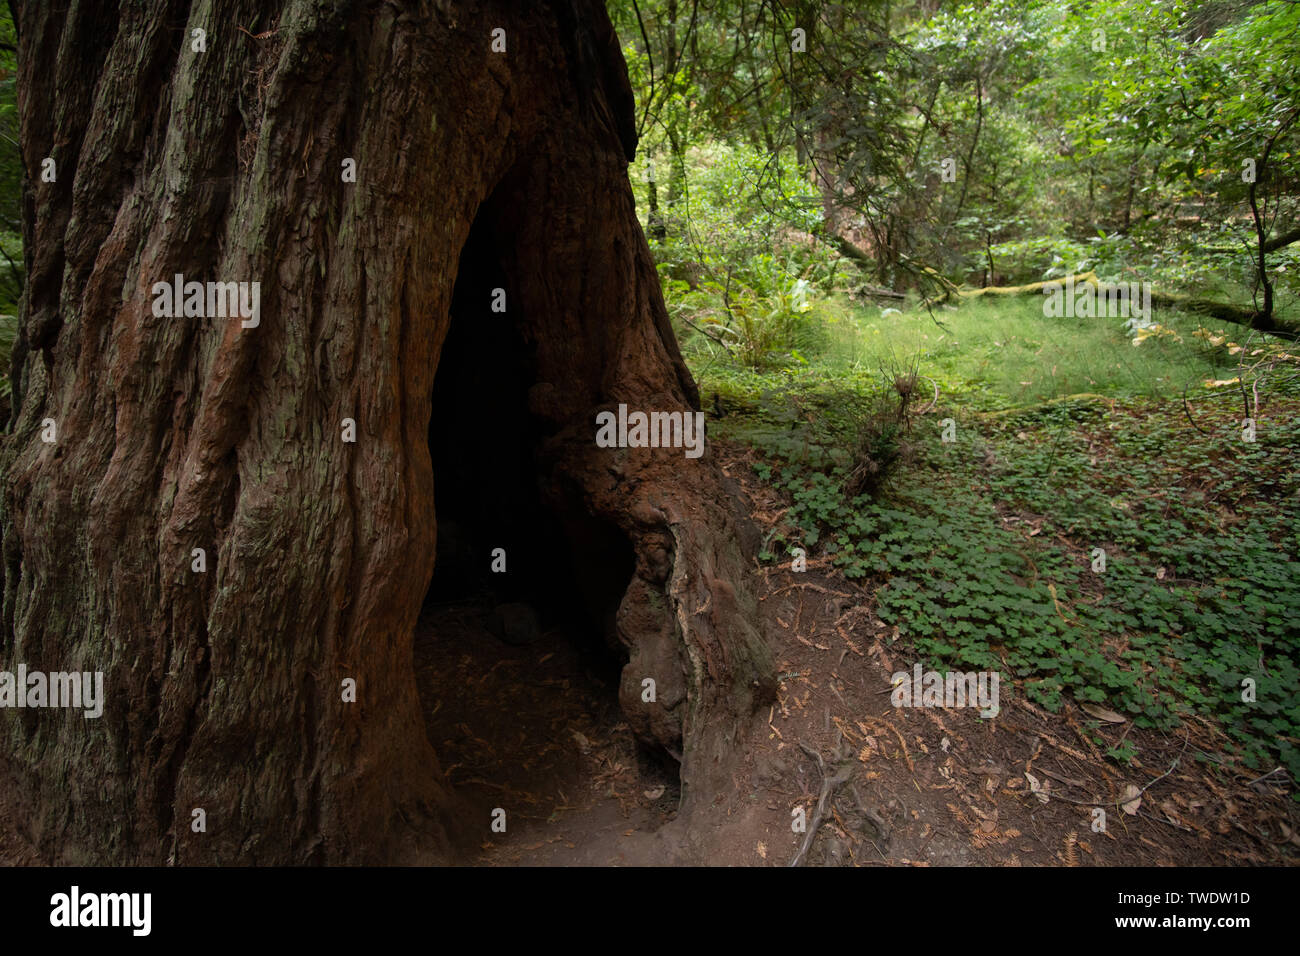 Detailed look at Redwood Tree hollowed out stump. in Muir Woods National Park. - Stock Image